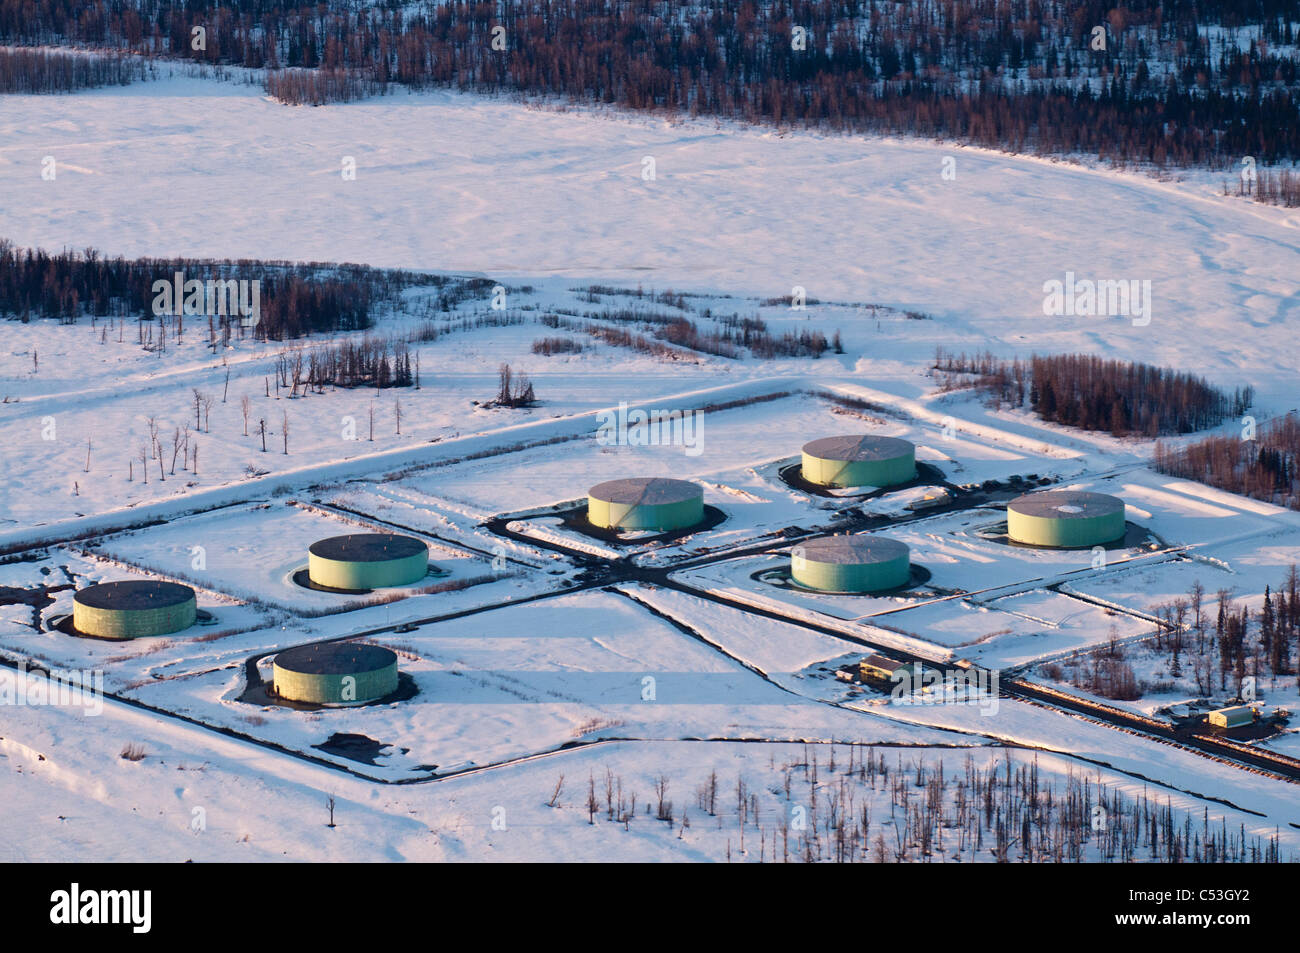 Aerial winter view of the Drift River oil terminal, located near the shores of Trading Bay in Cook Inlet, Alaska, - Stock Image